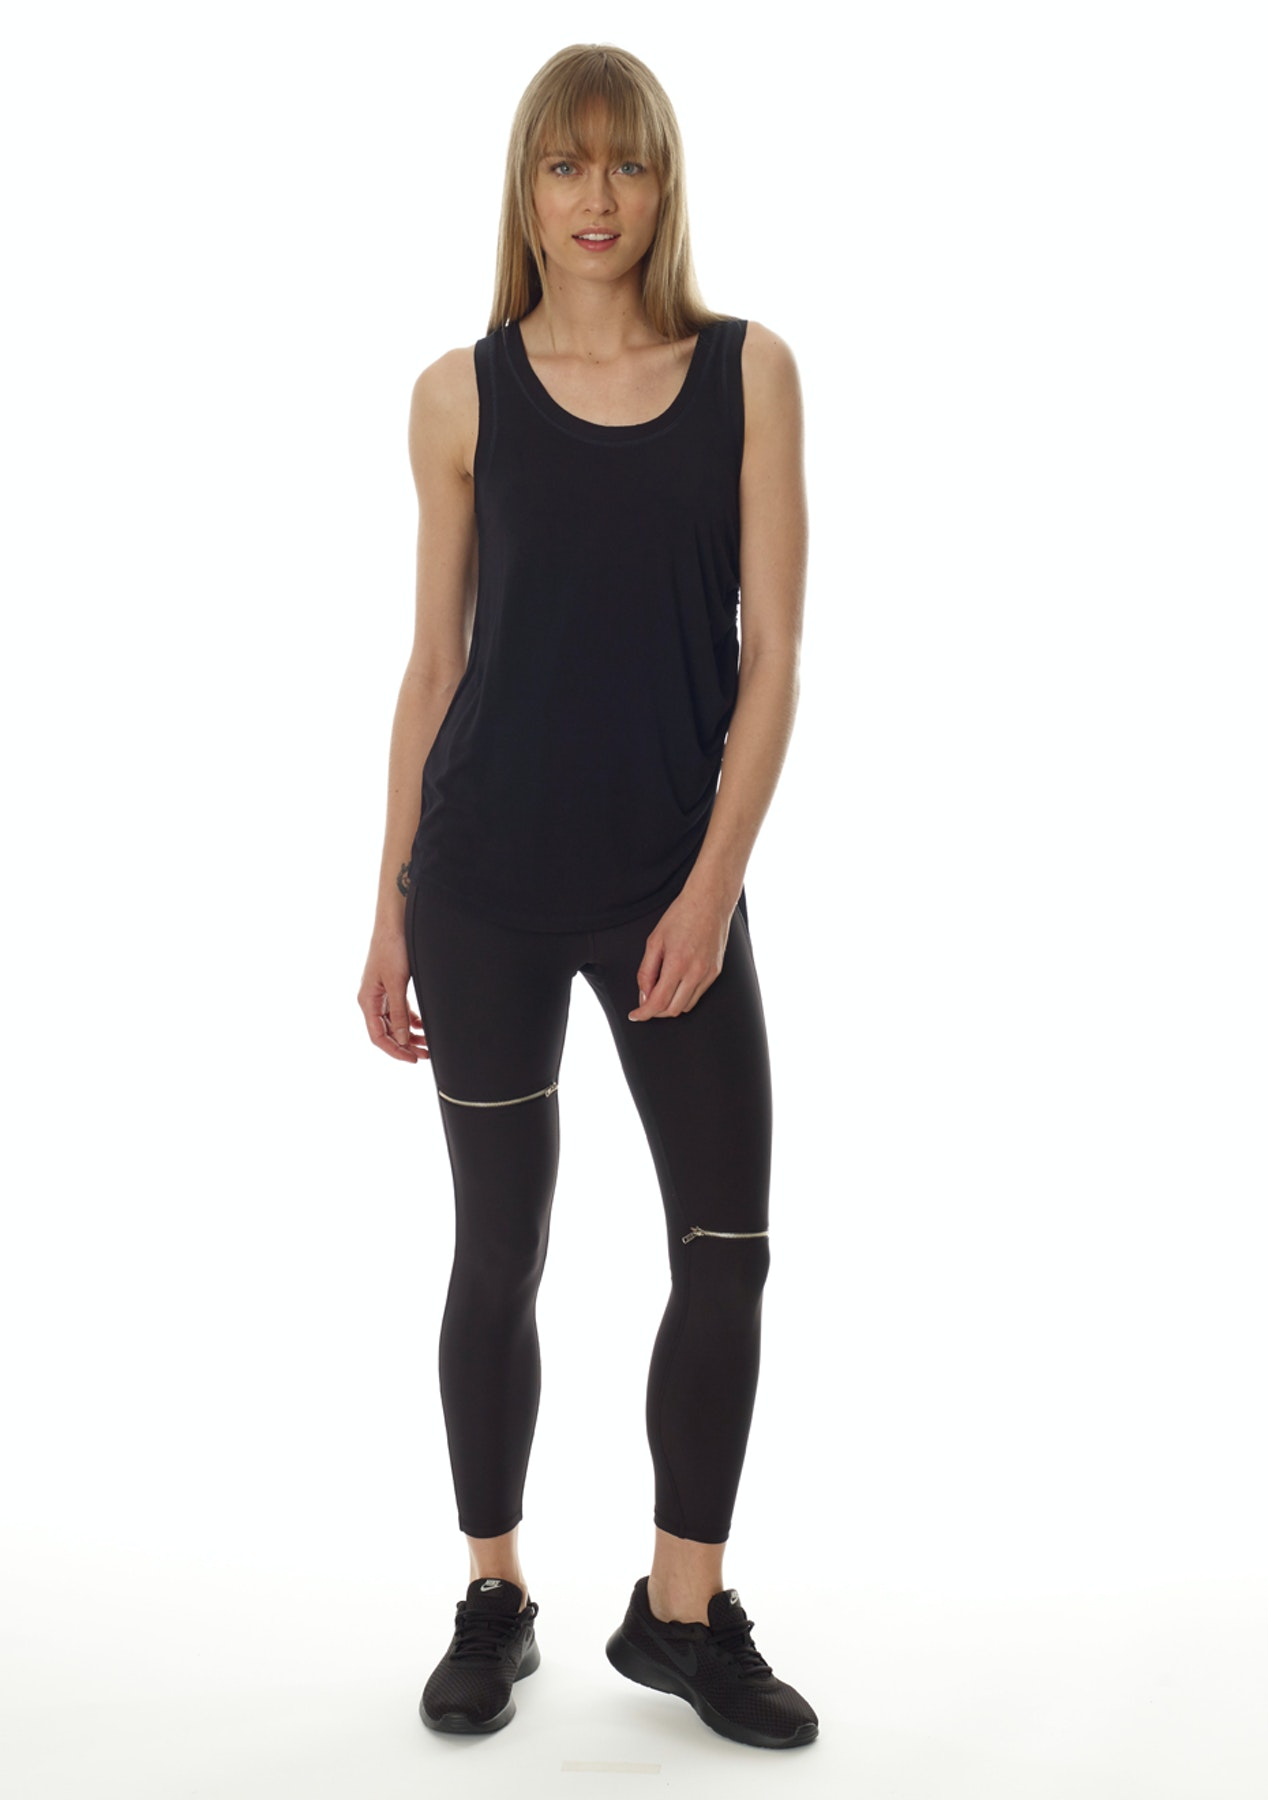 eec3278abe41a X by Gottex - Carmen Open Legging - Black - Back By Popular Demand:  Activewear under $40 - Onceit